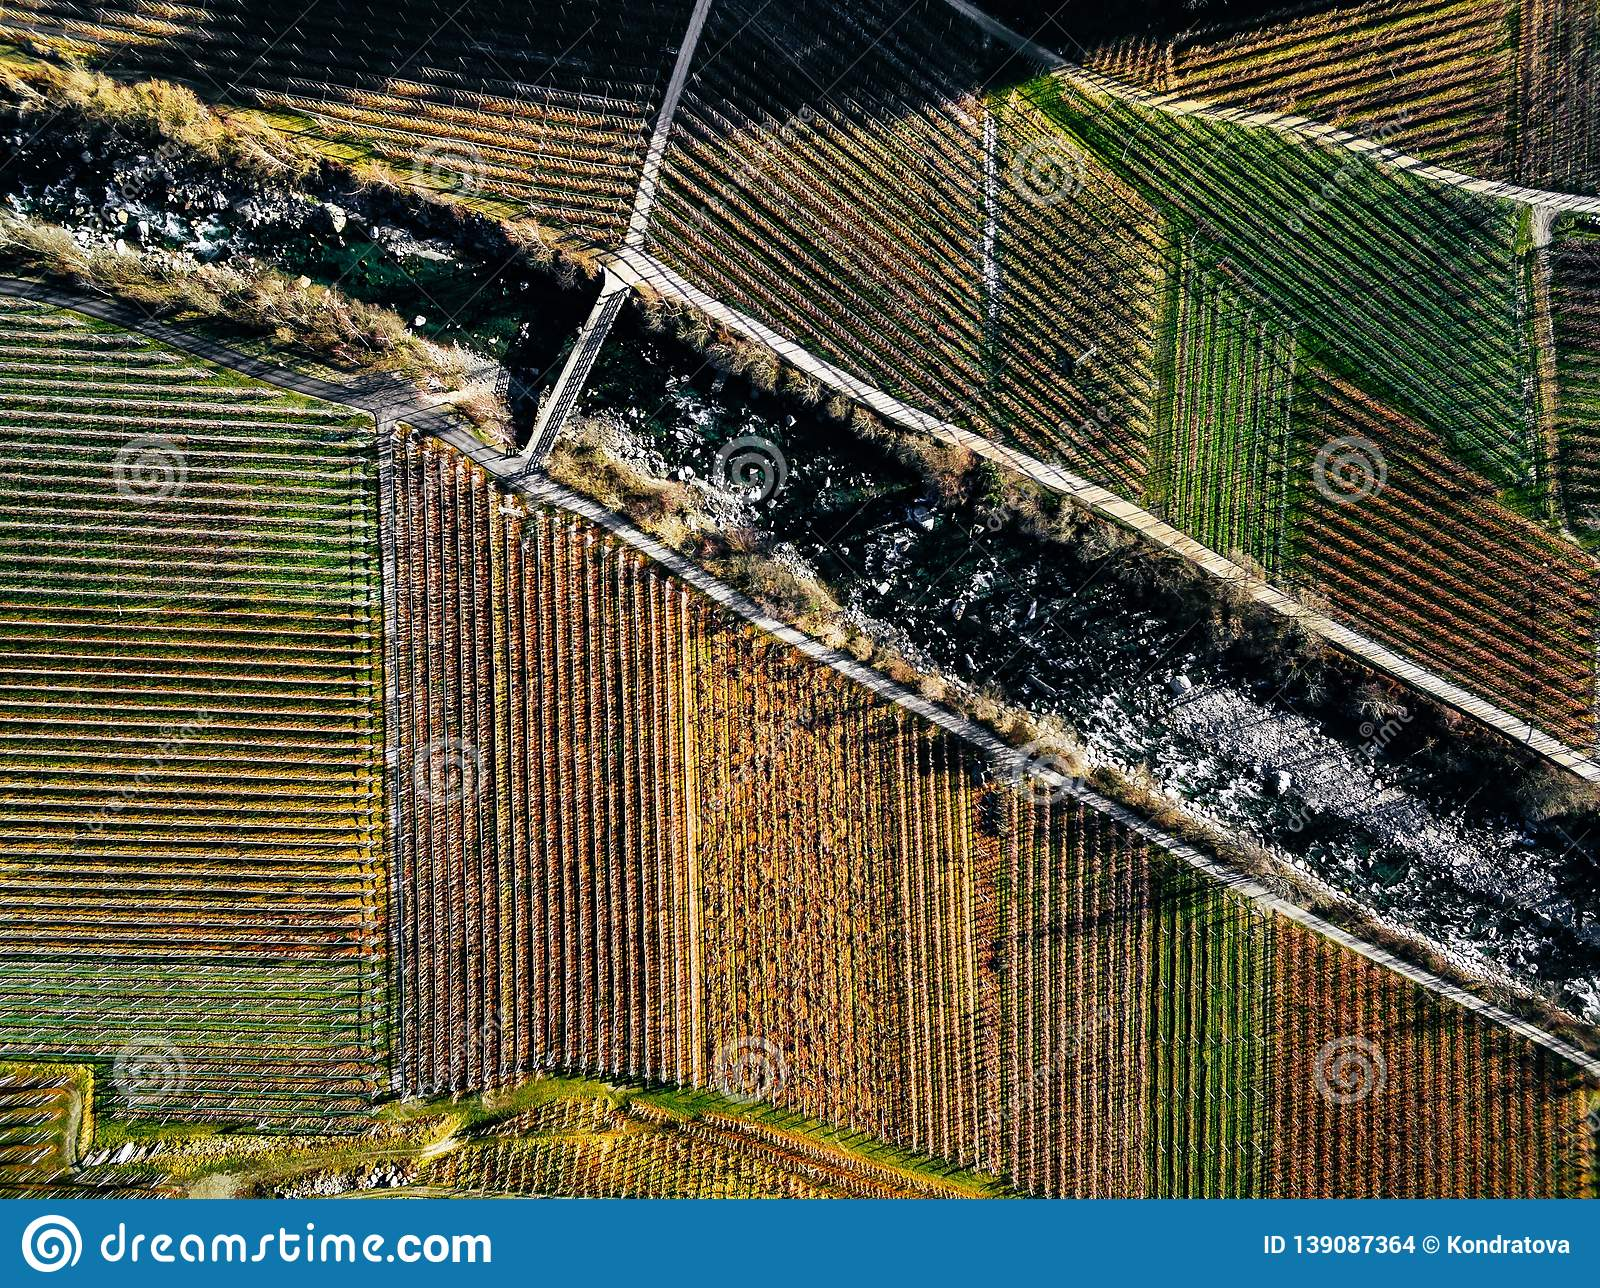 Aerial view of vineyard fields during winter in Italy